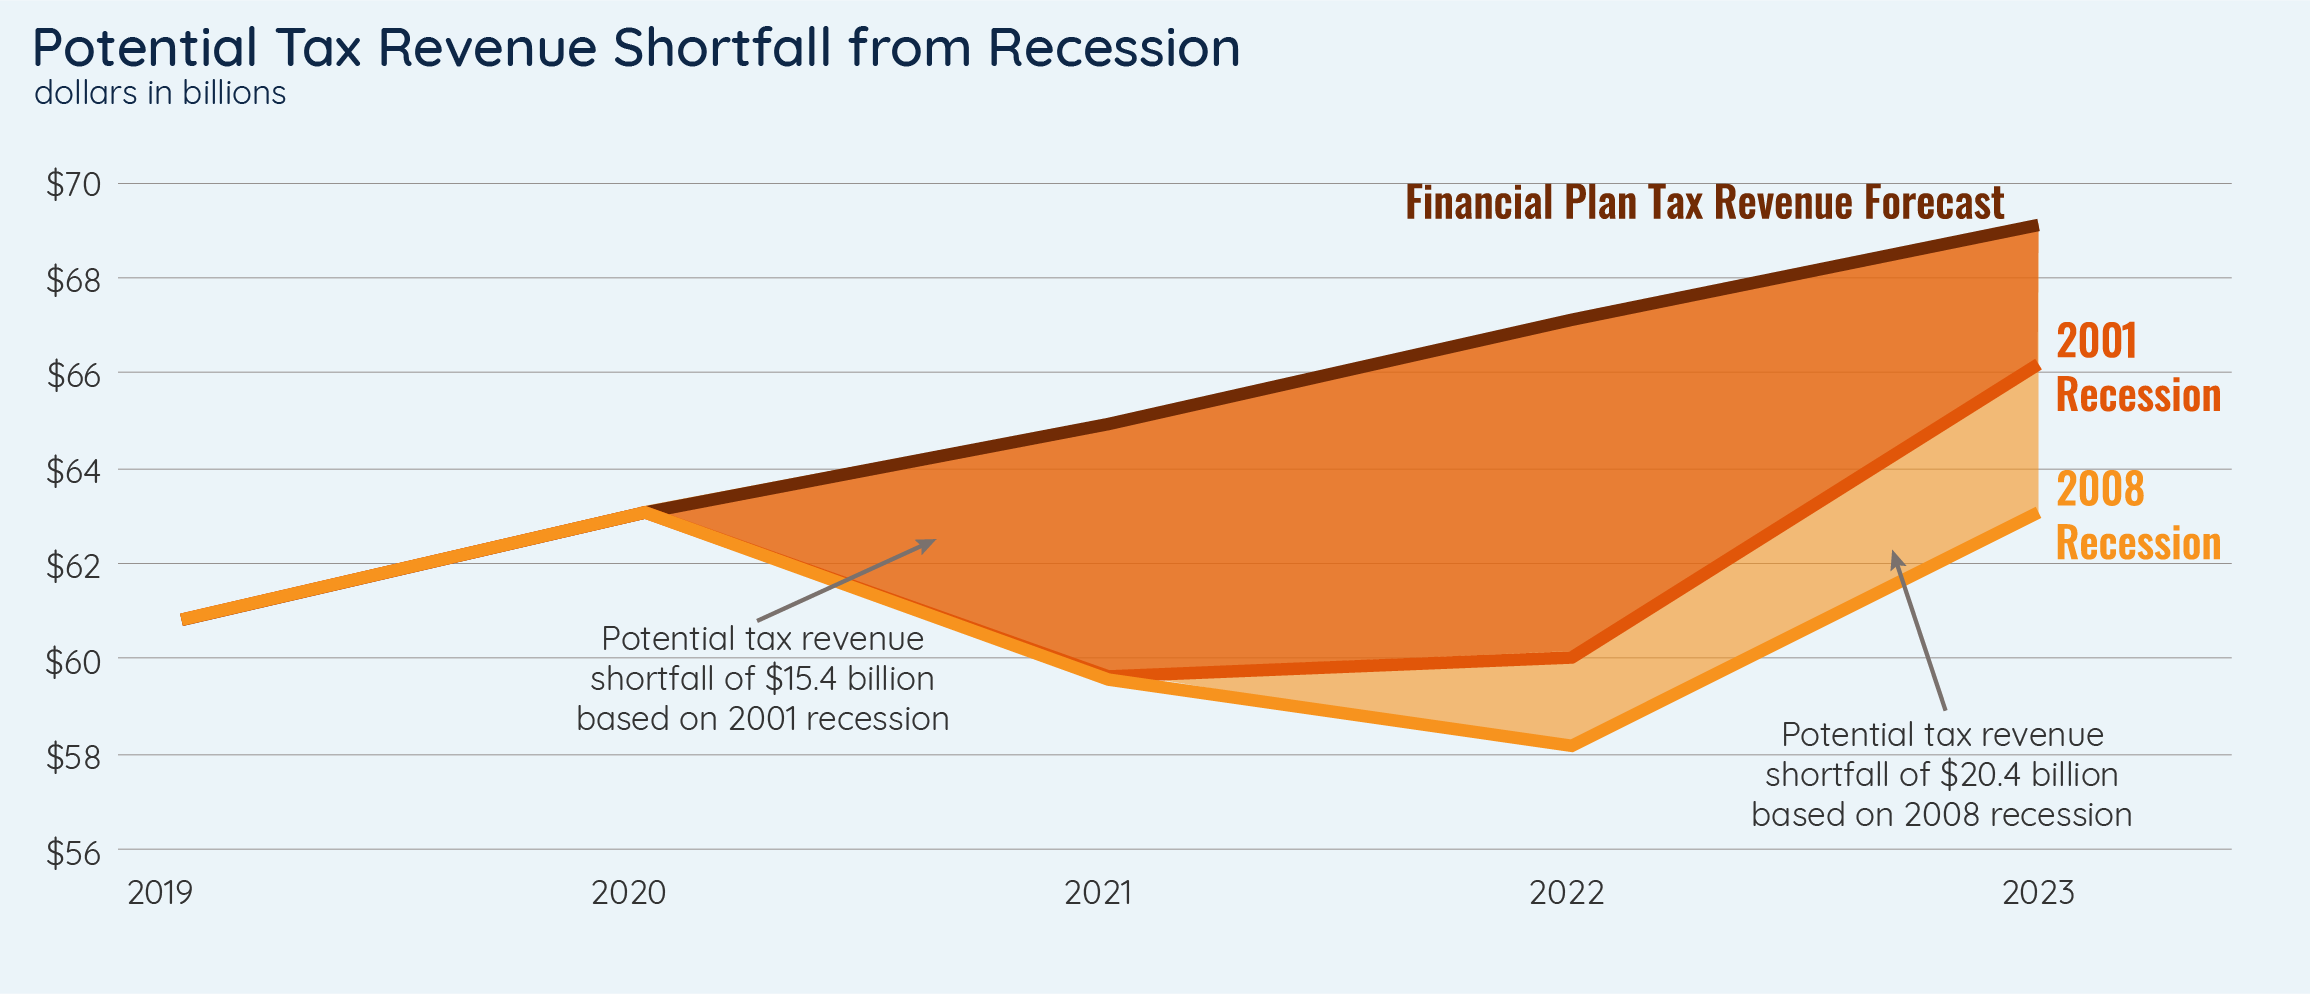 Potential Tax Revenue Shortfall from Recession